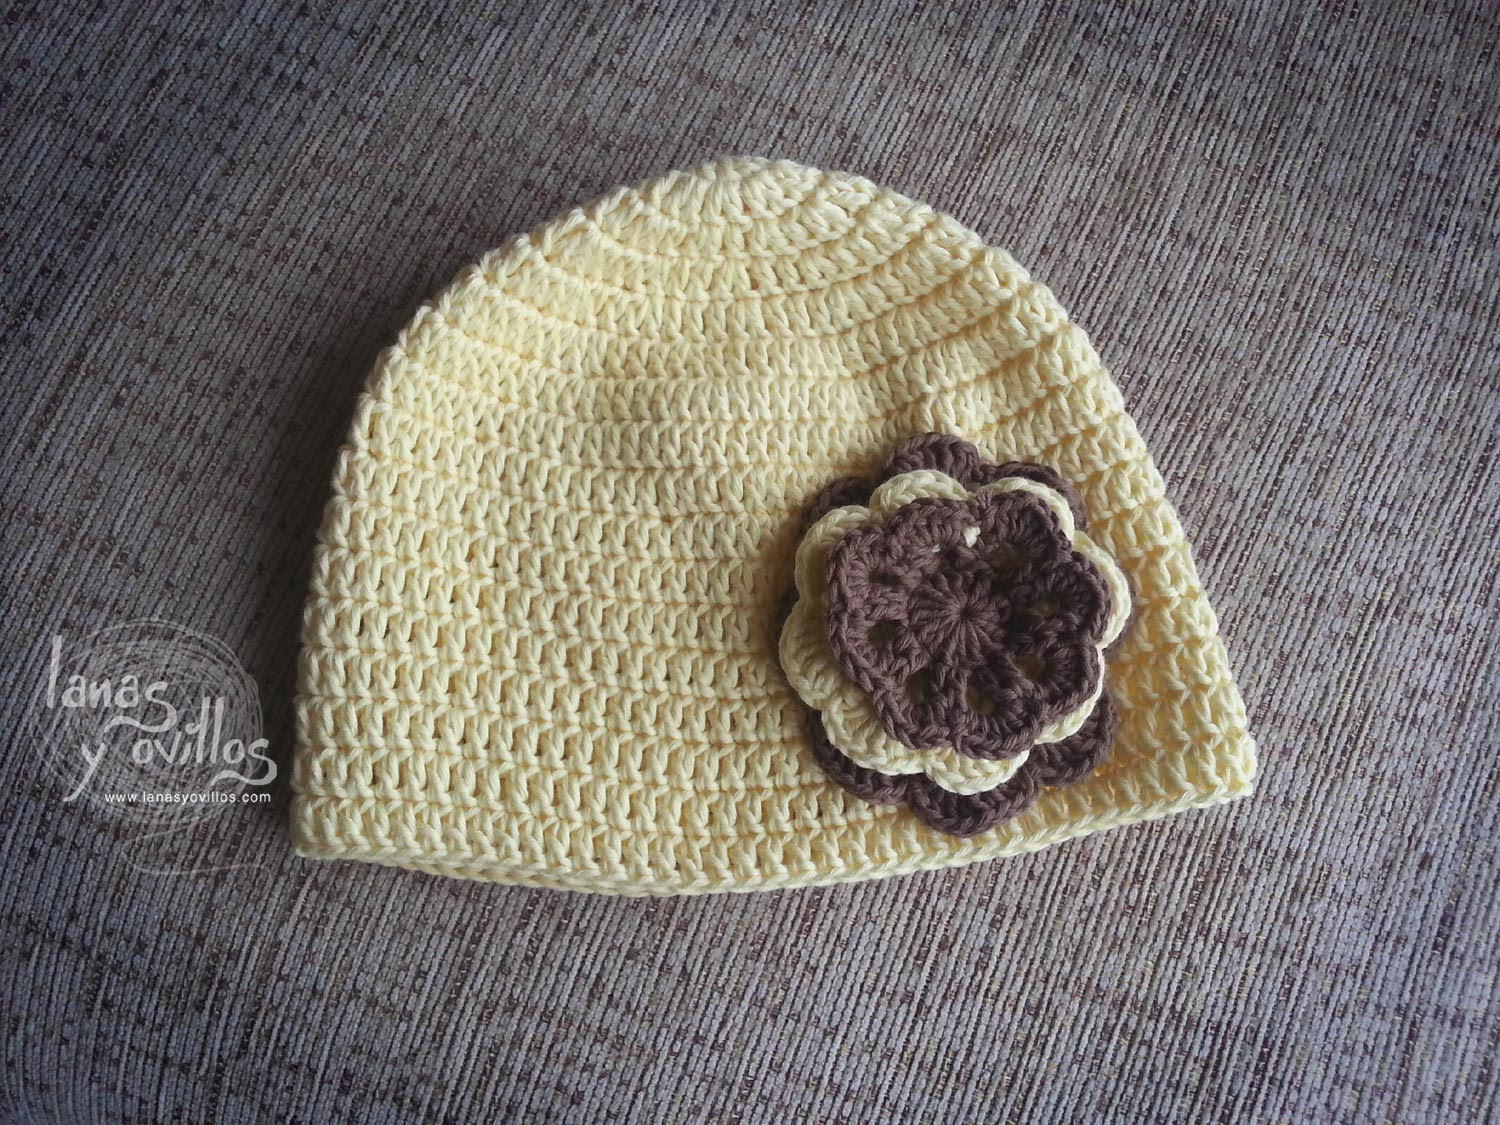 Tutorial Gorro Crochet o Ganchillo Fácil Paso a Paso (English subtitles)